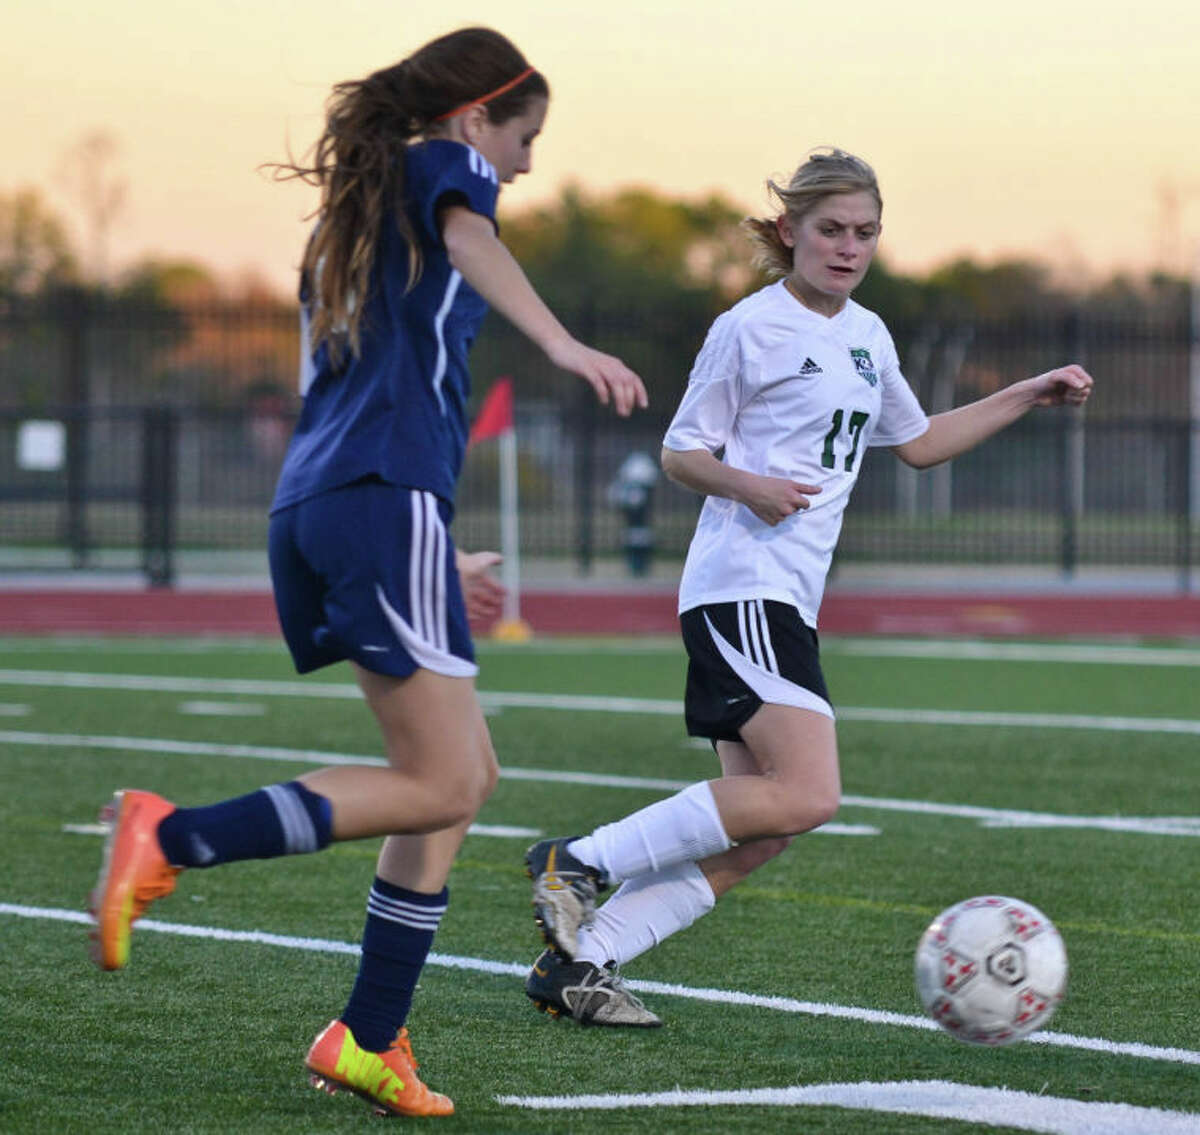 Kingwood Park's Katie Plummer defends as a Klein Collins forward dribbles downfield during the second half of the Lady Panthers' 2-0 win in the opening round of the Humble ISD Women's Soccer Invitational on Jan. 10 at Turner Stadium in Humble.